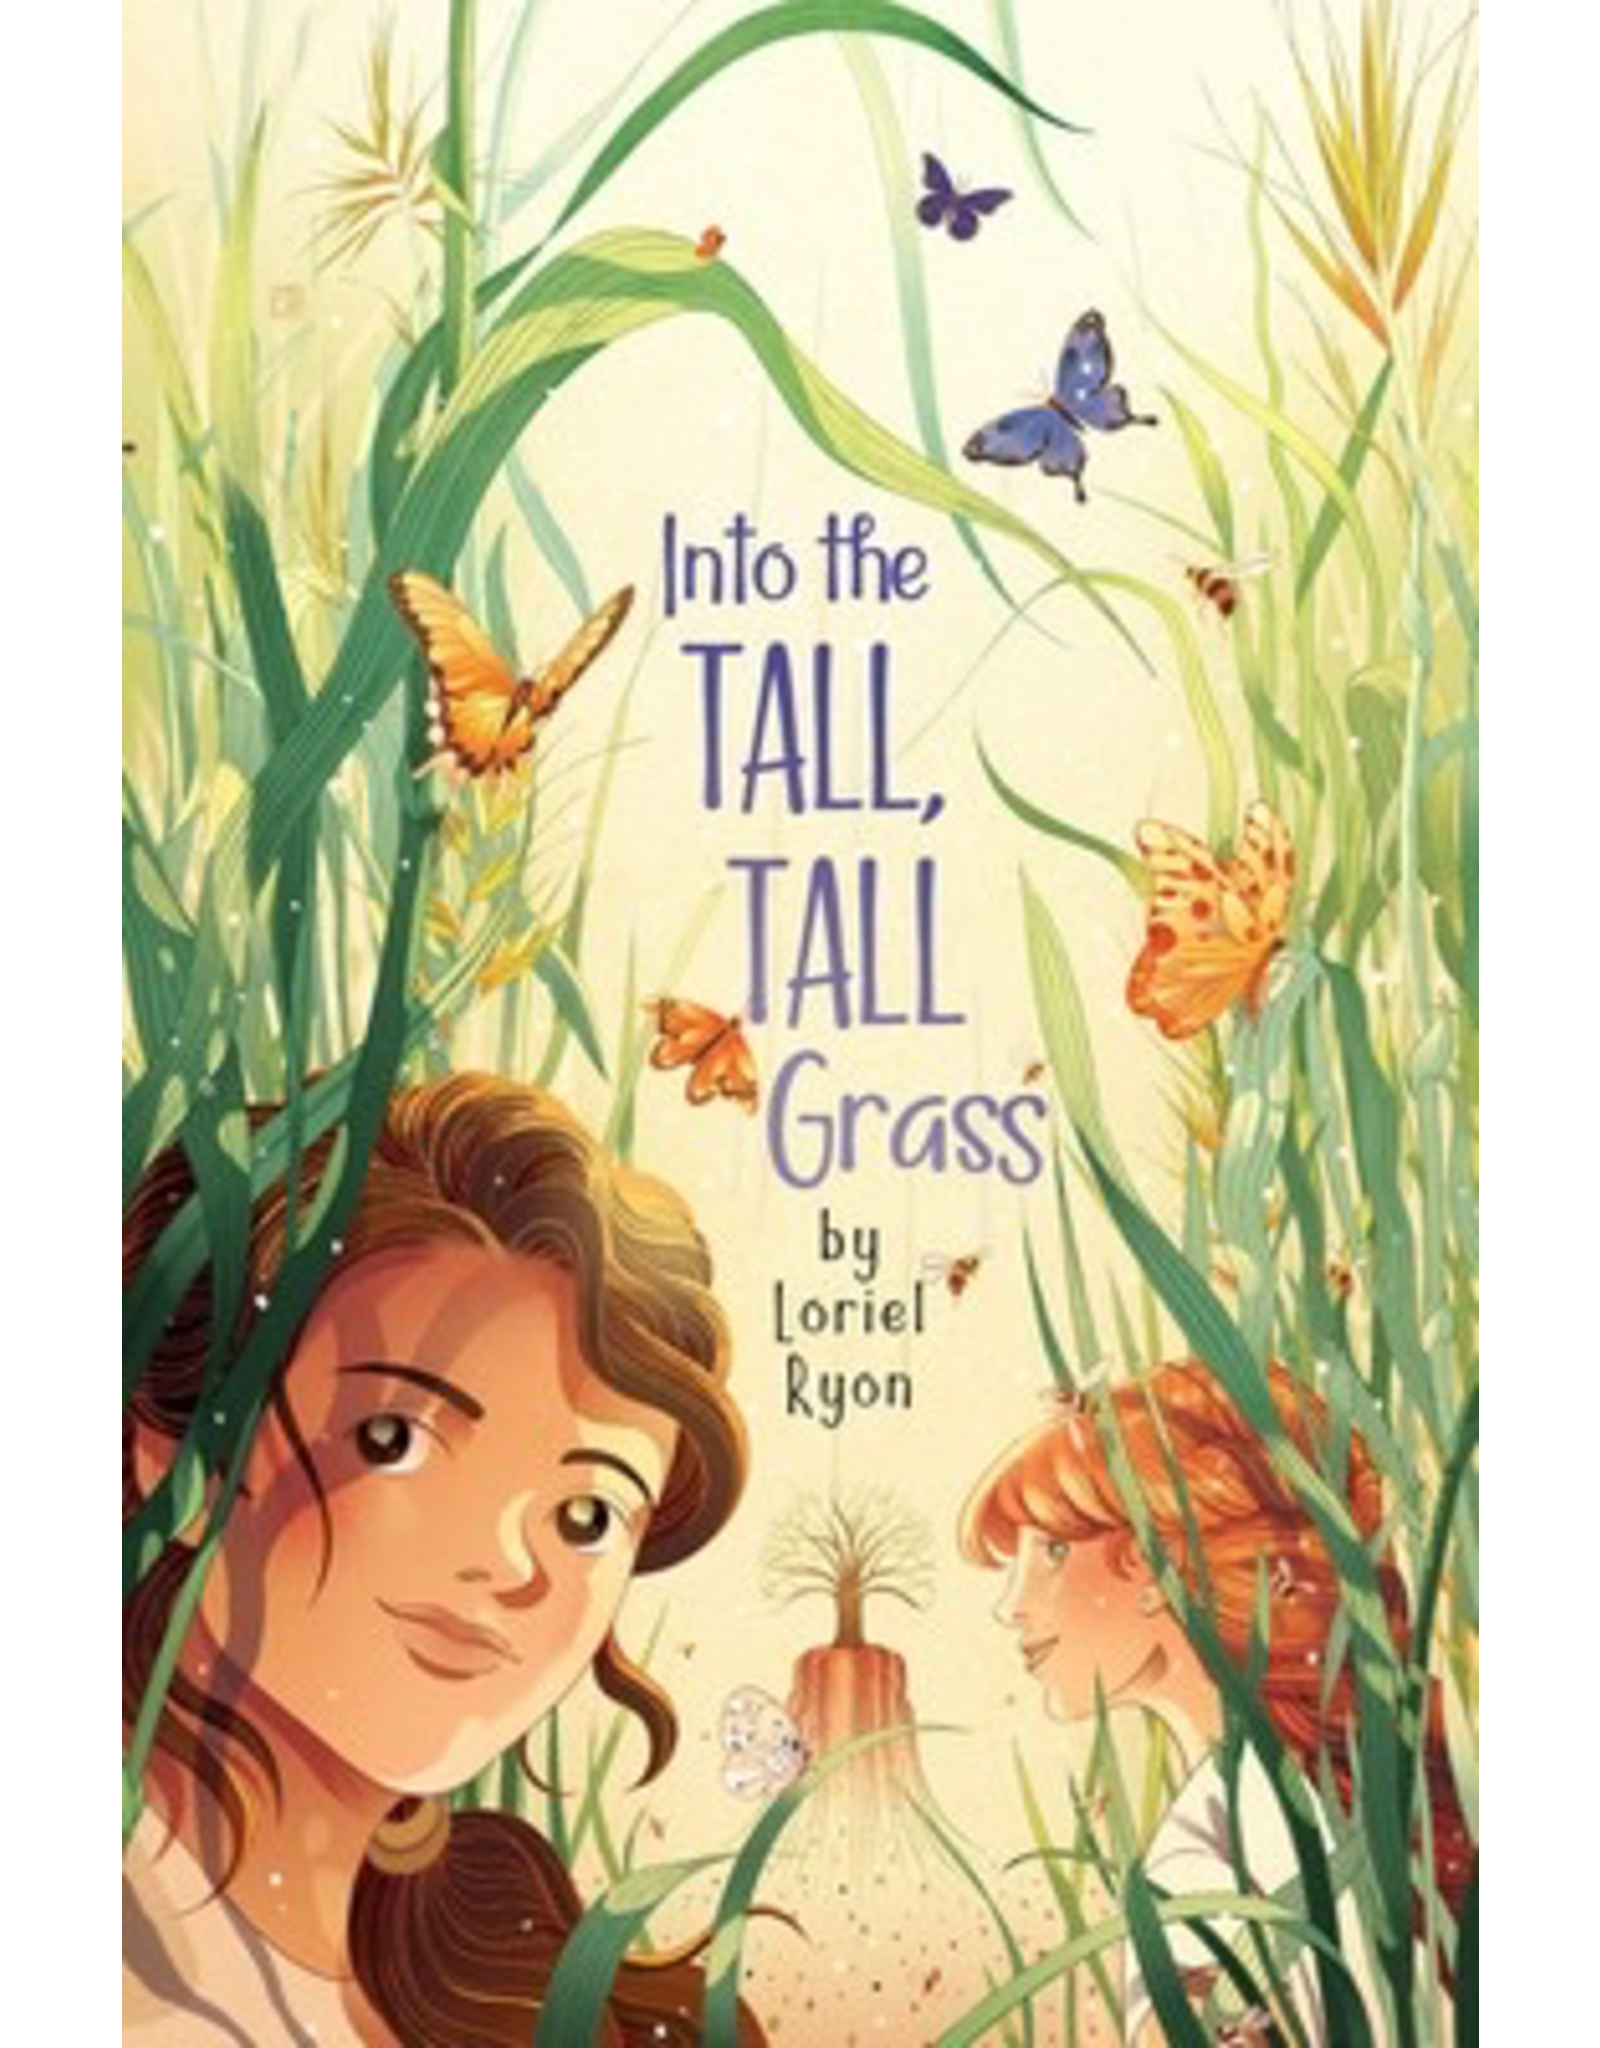 Simon and Schuster INTO THE TALL TALL GRASS